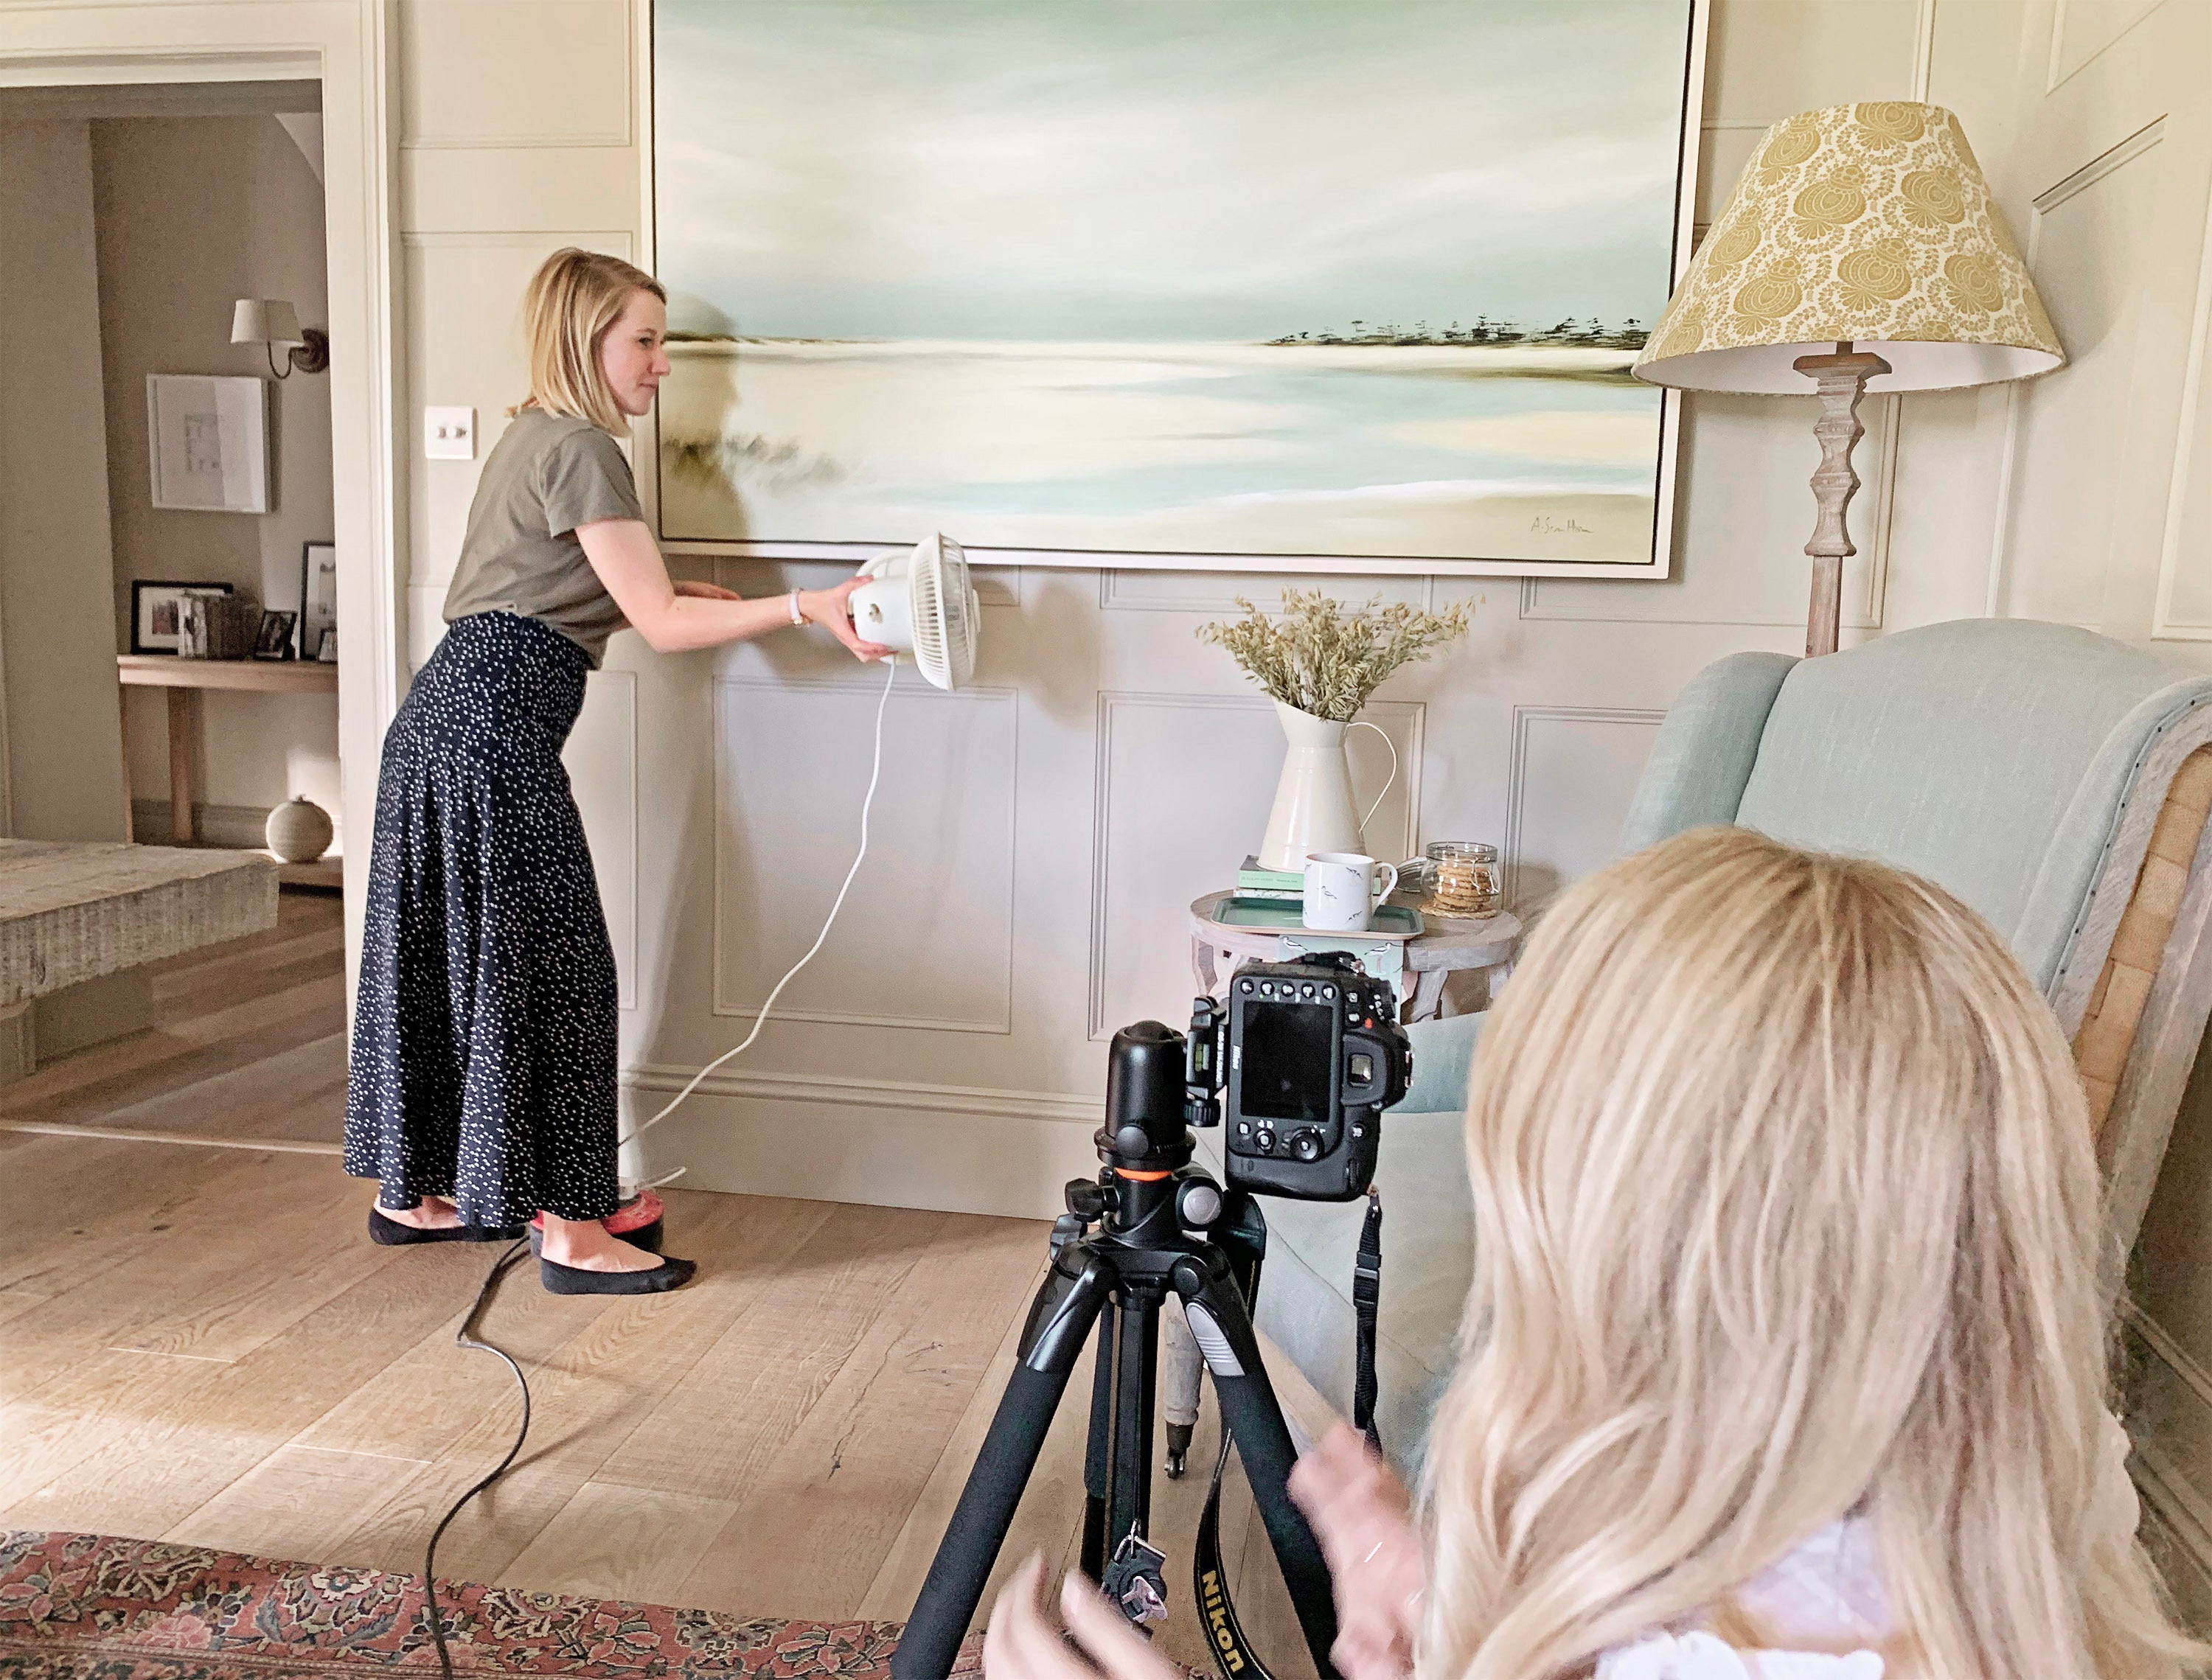 Using Sophie's fan to capture beautiful shots of Sophie's new coastal collection